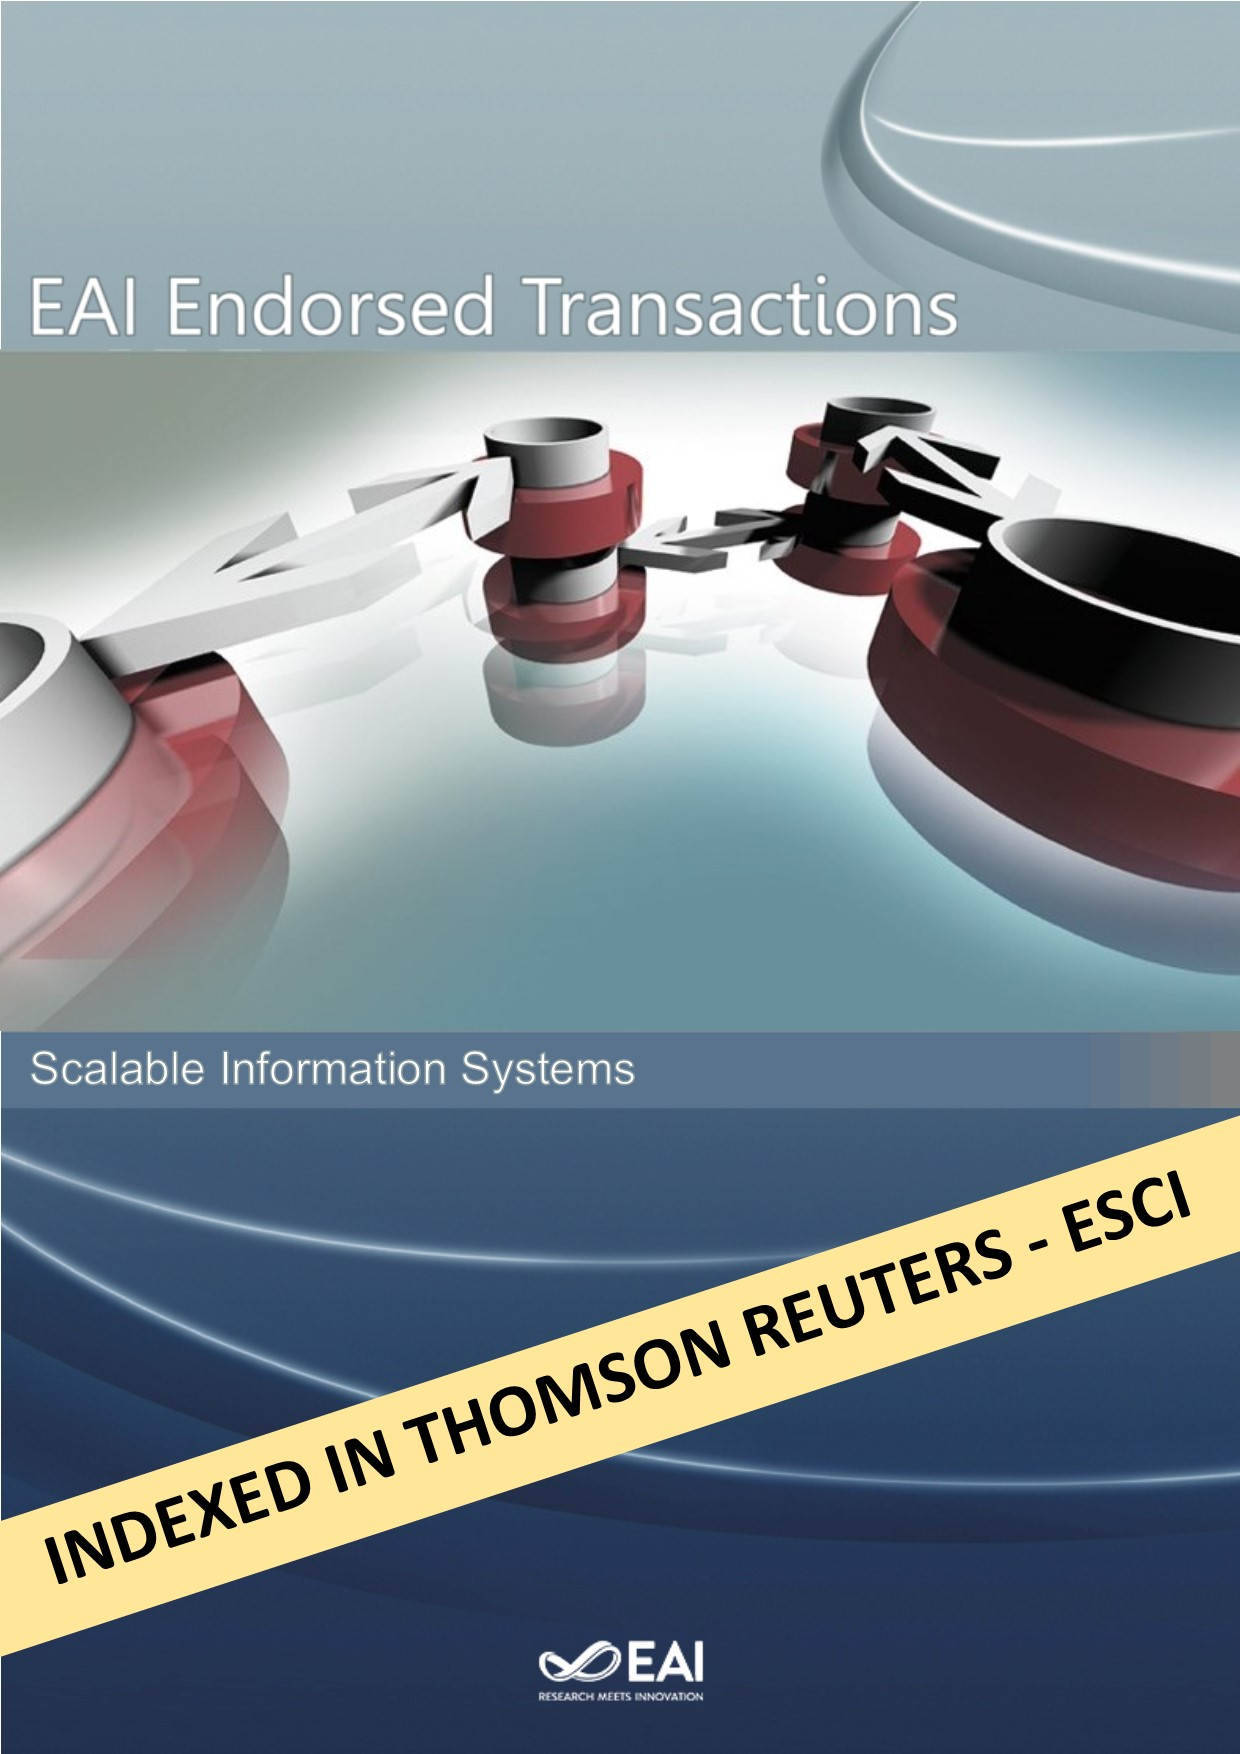 EAI Endorsed Transactions on Scalable Information Systems - EUDL